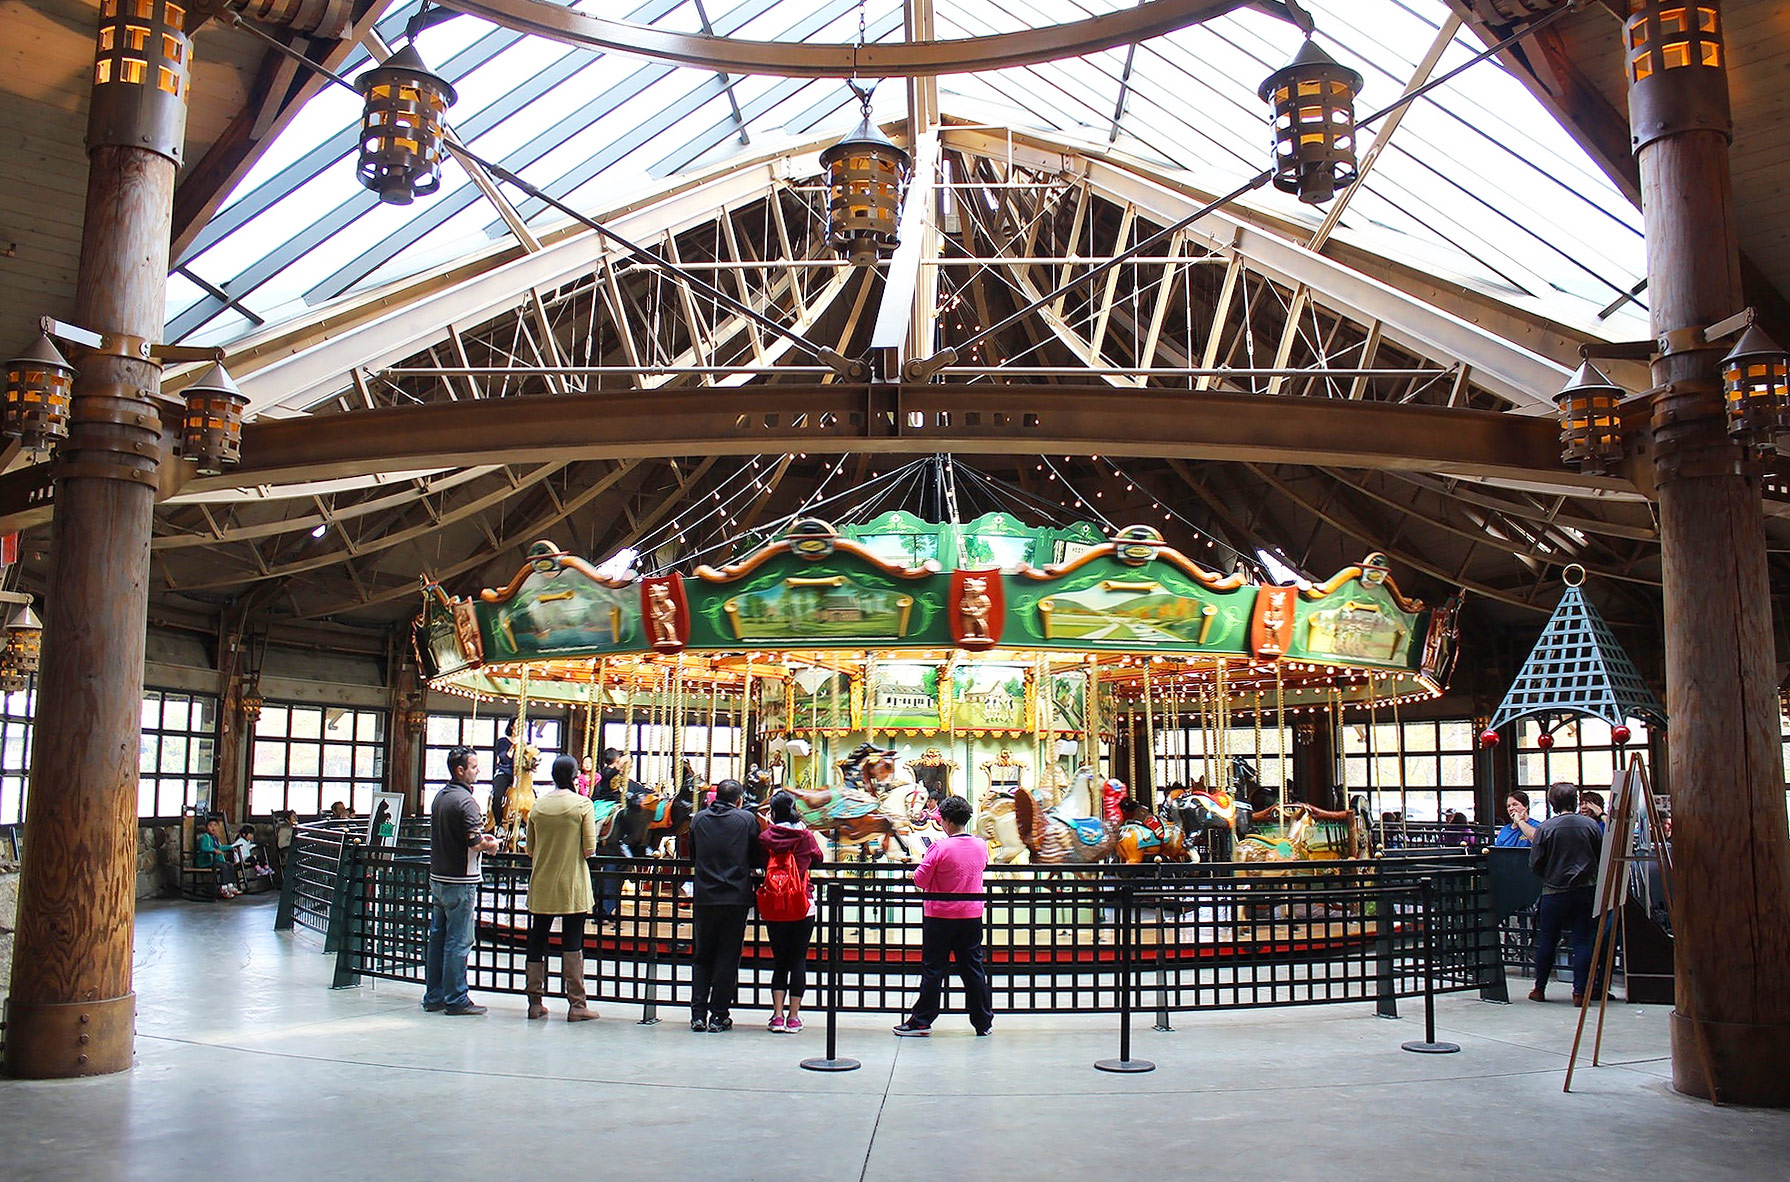 Bear State Park Merry-Go-Round, new York - PearlMagaret.com